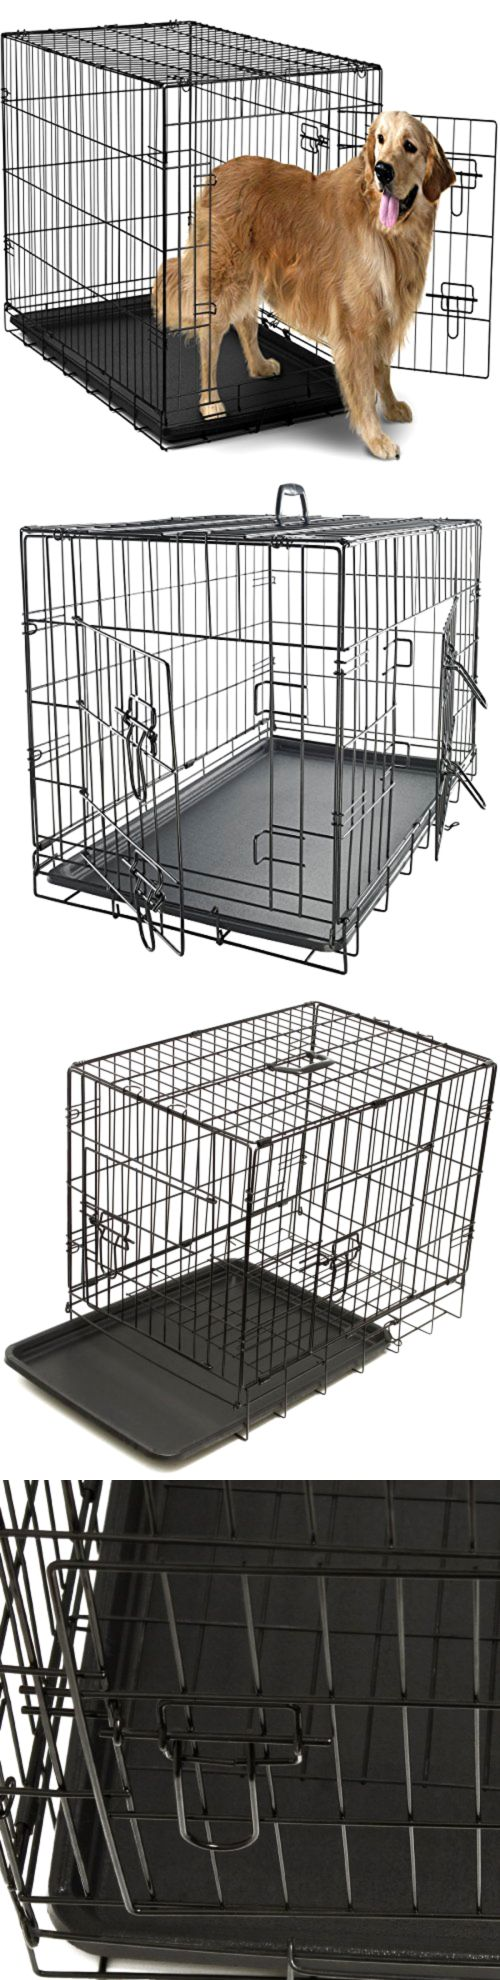 Cages and Crates 121851: Extra Large Dog Crate Kennel Xxl Xl Huge Folding Pet Wire Cage Giant Breed Size -> BUY IT NOW ONLY: $49.05 on eBay!